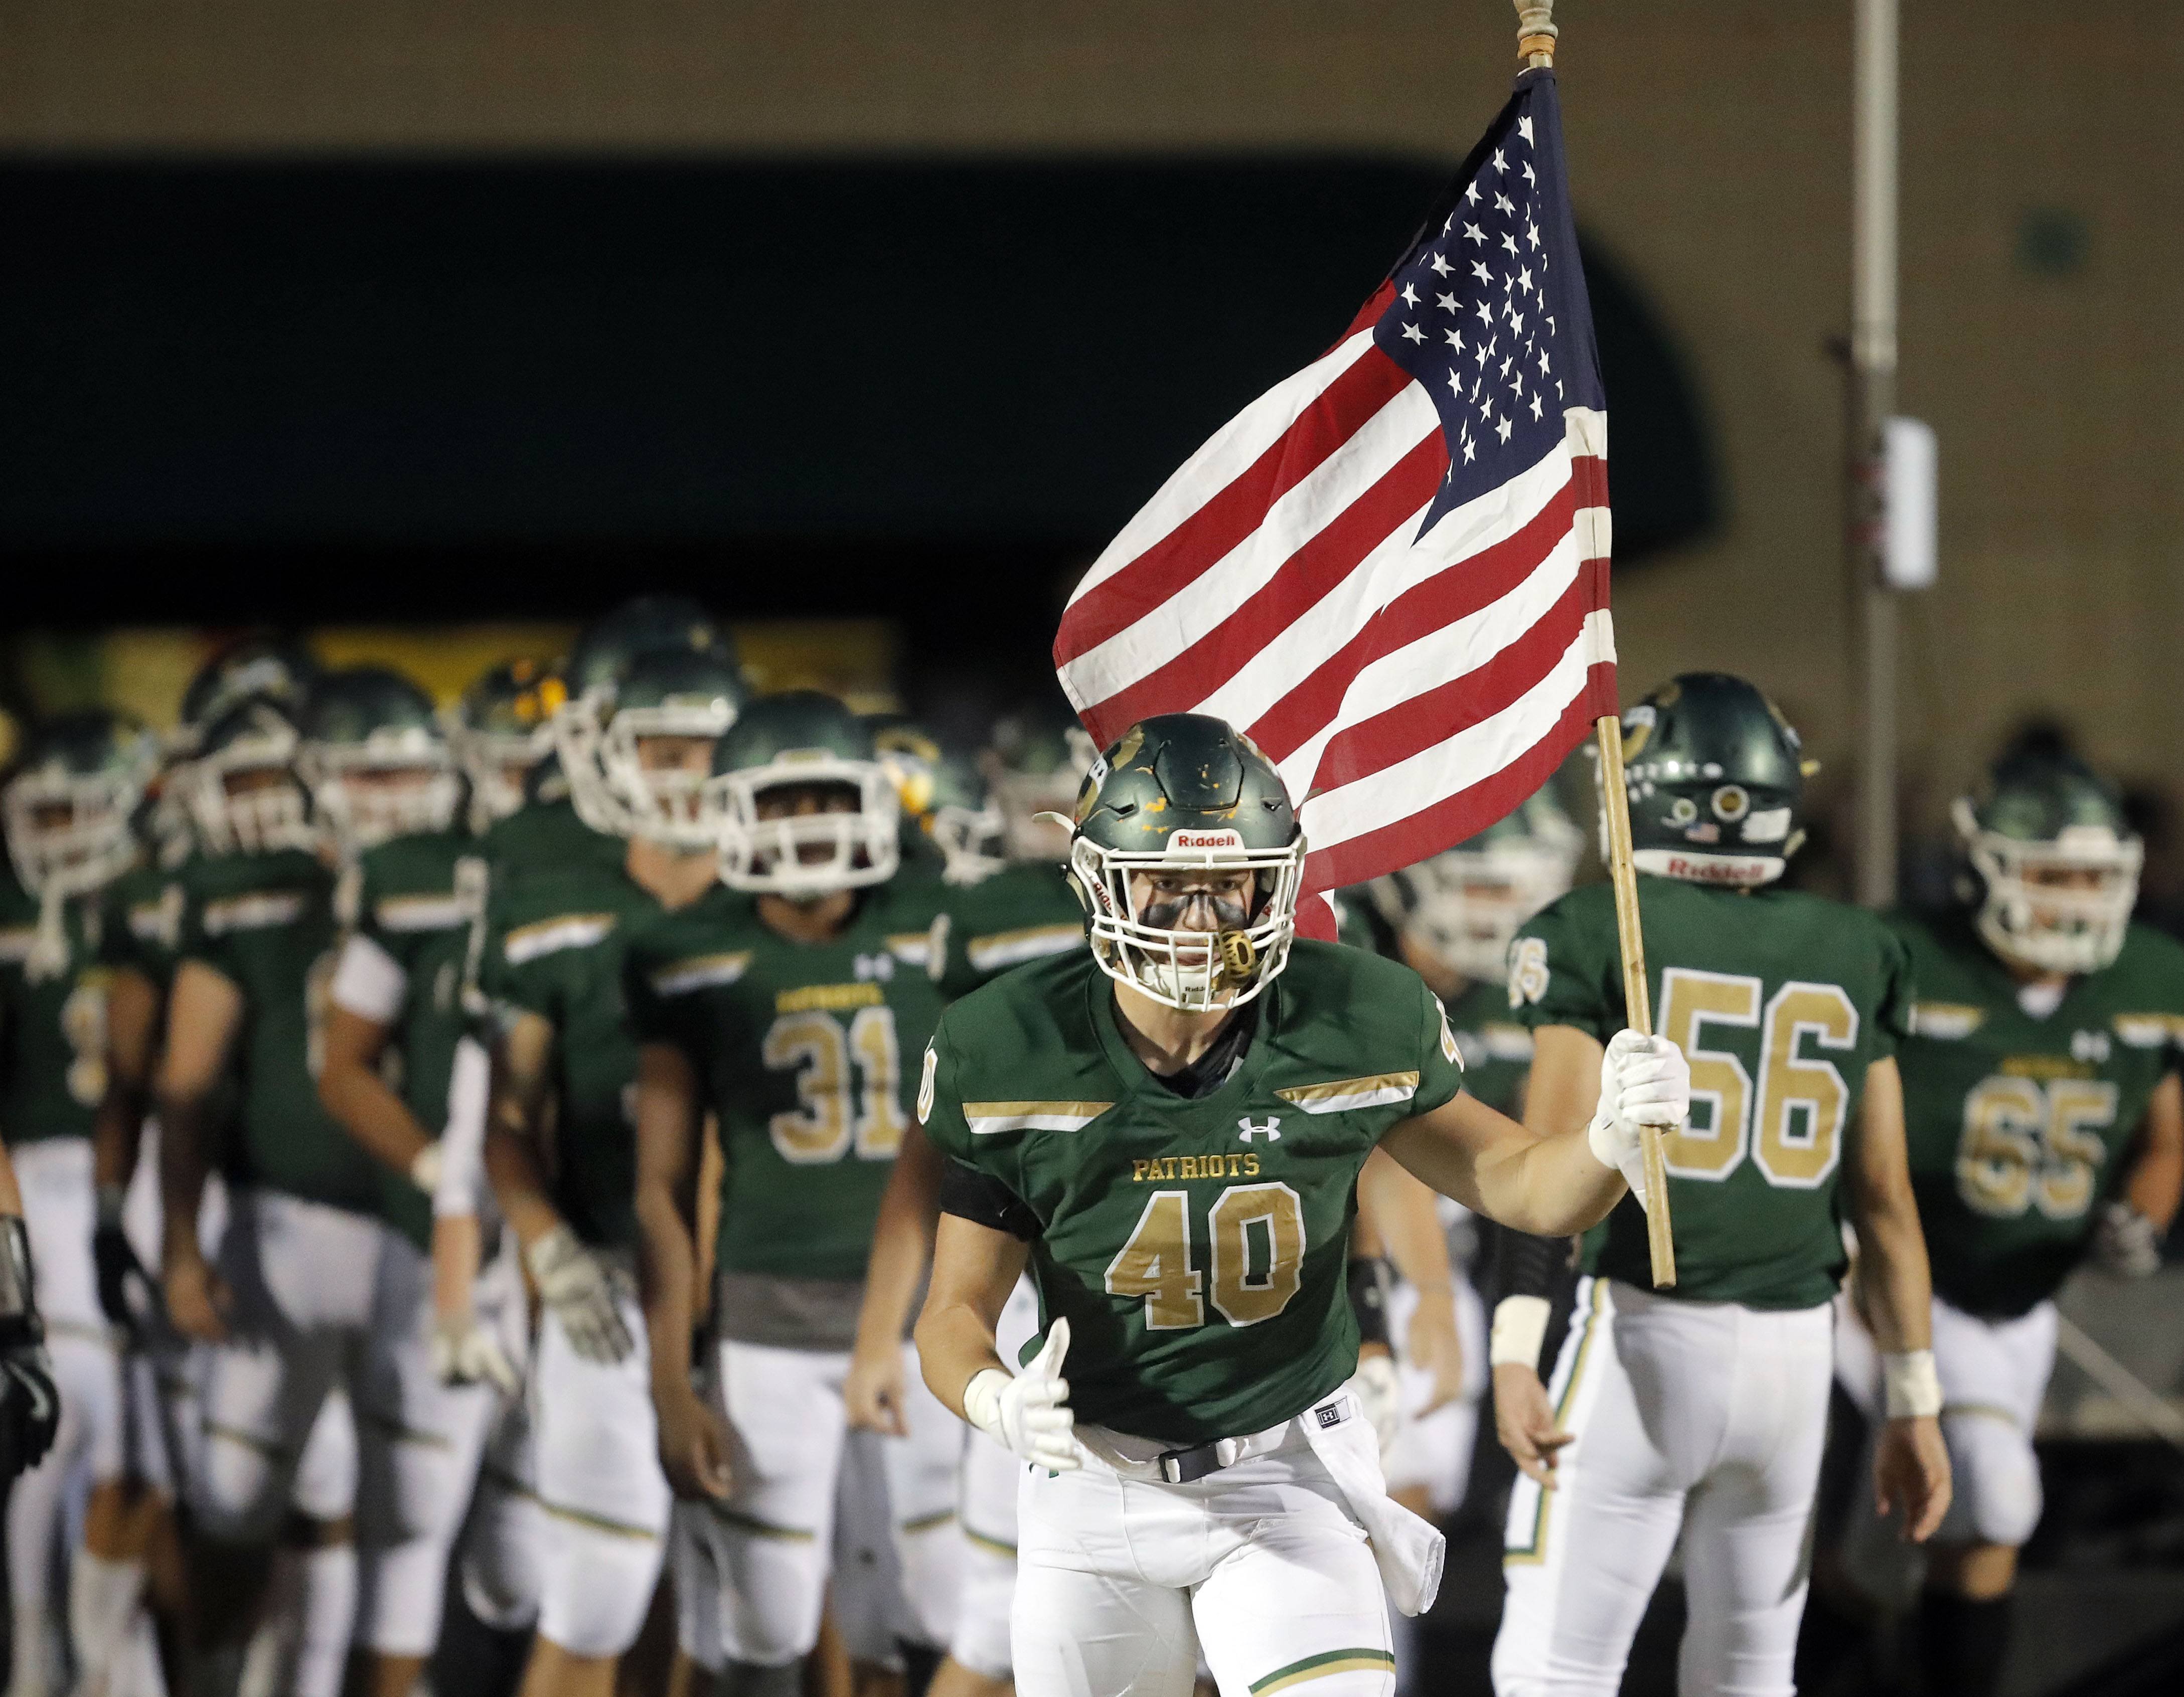 Images: Stevenson falls to Lake Zurich in OT, 23-20 in Week 5 football